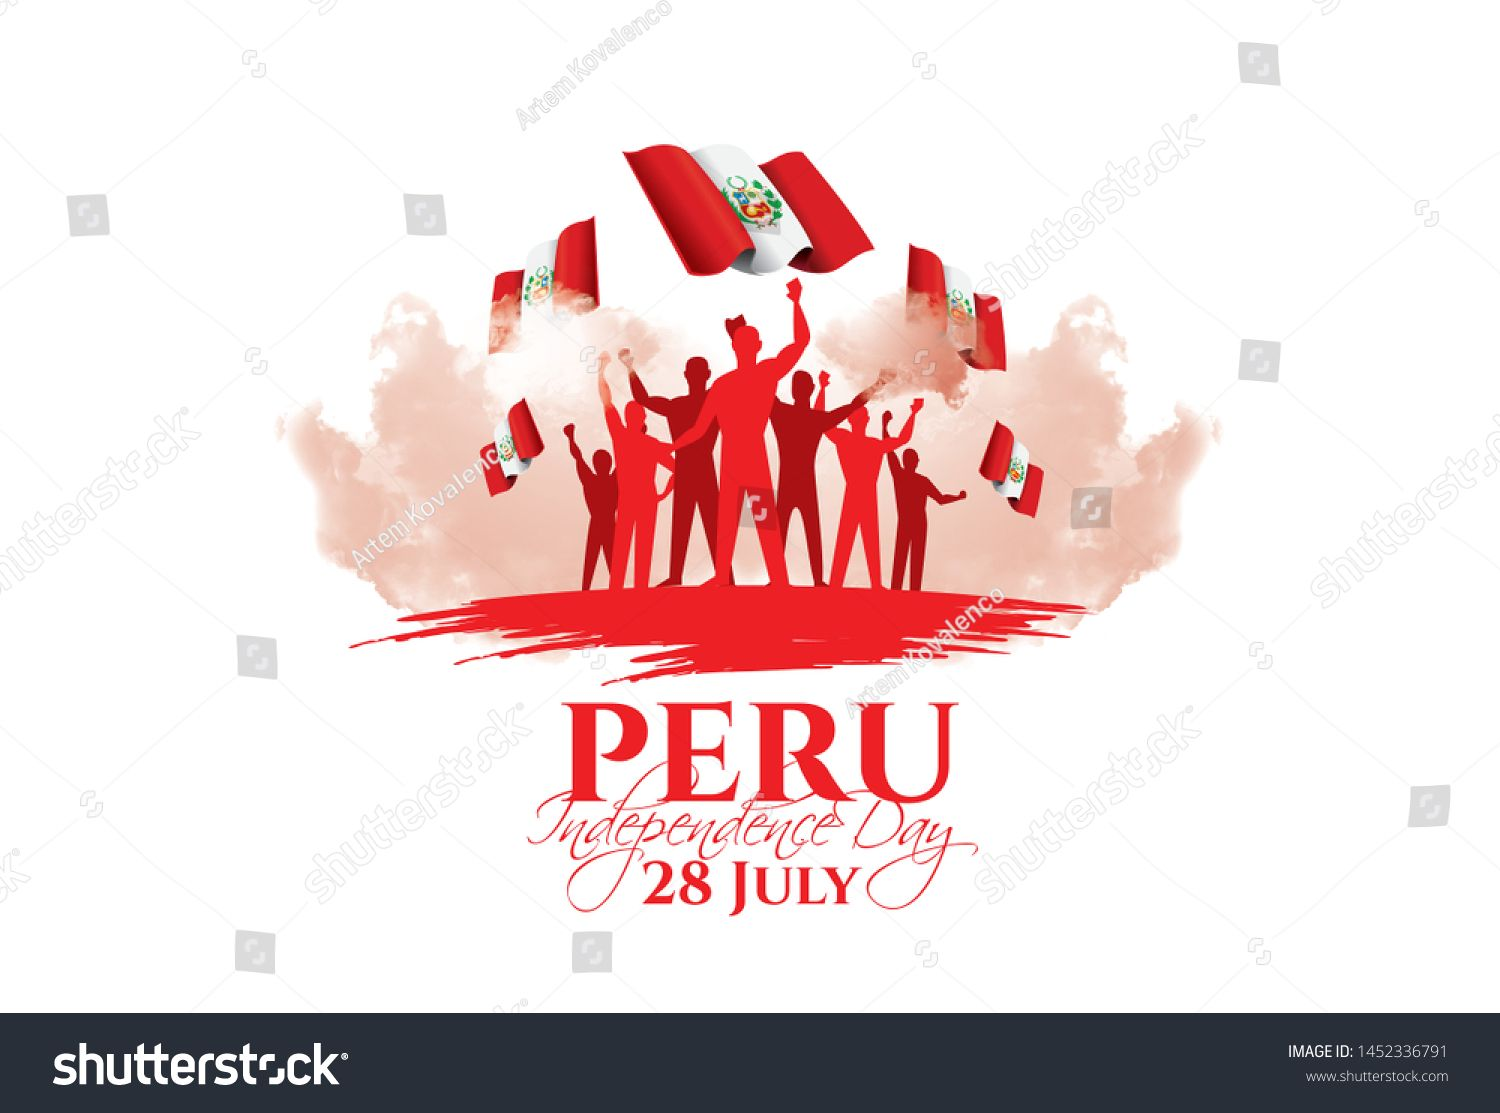 Vector Illustration Design Schedule For The National Holiday Of Peru Independence Day On July 28 Fl In 2020 Holiday Poster Vector Illustration Design Design Elements